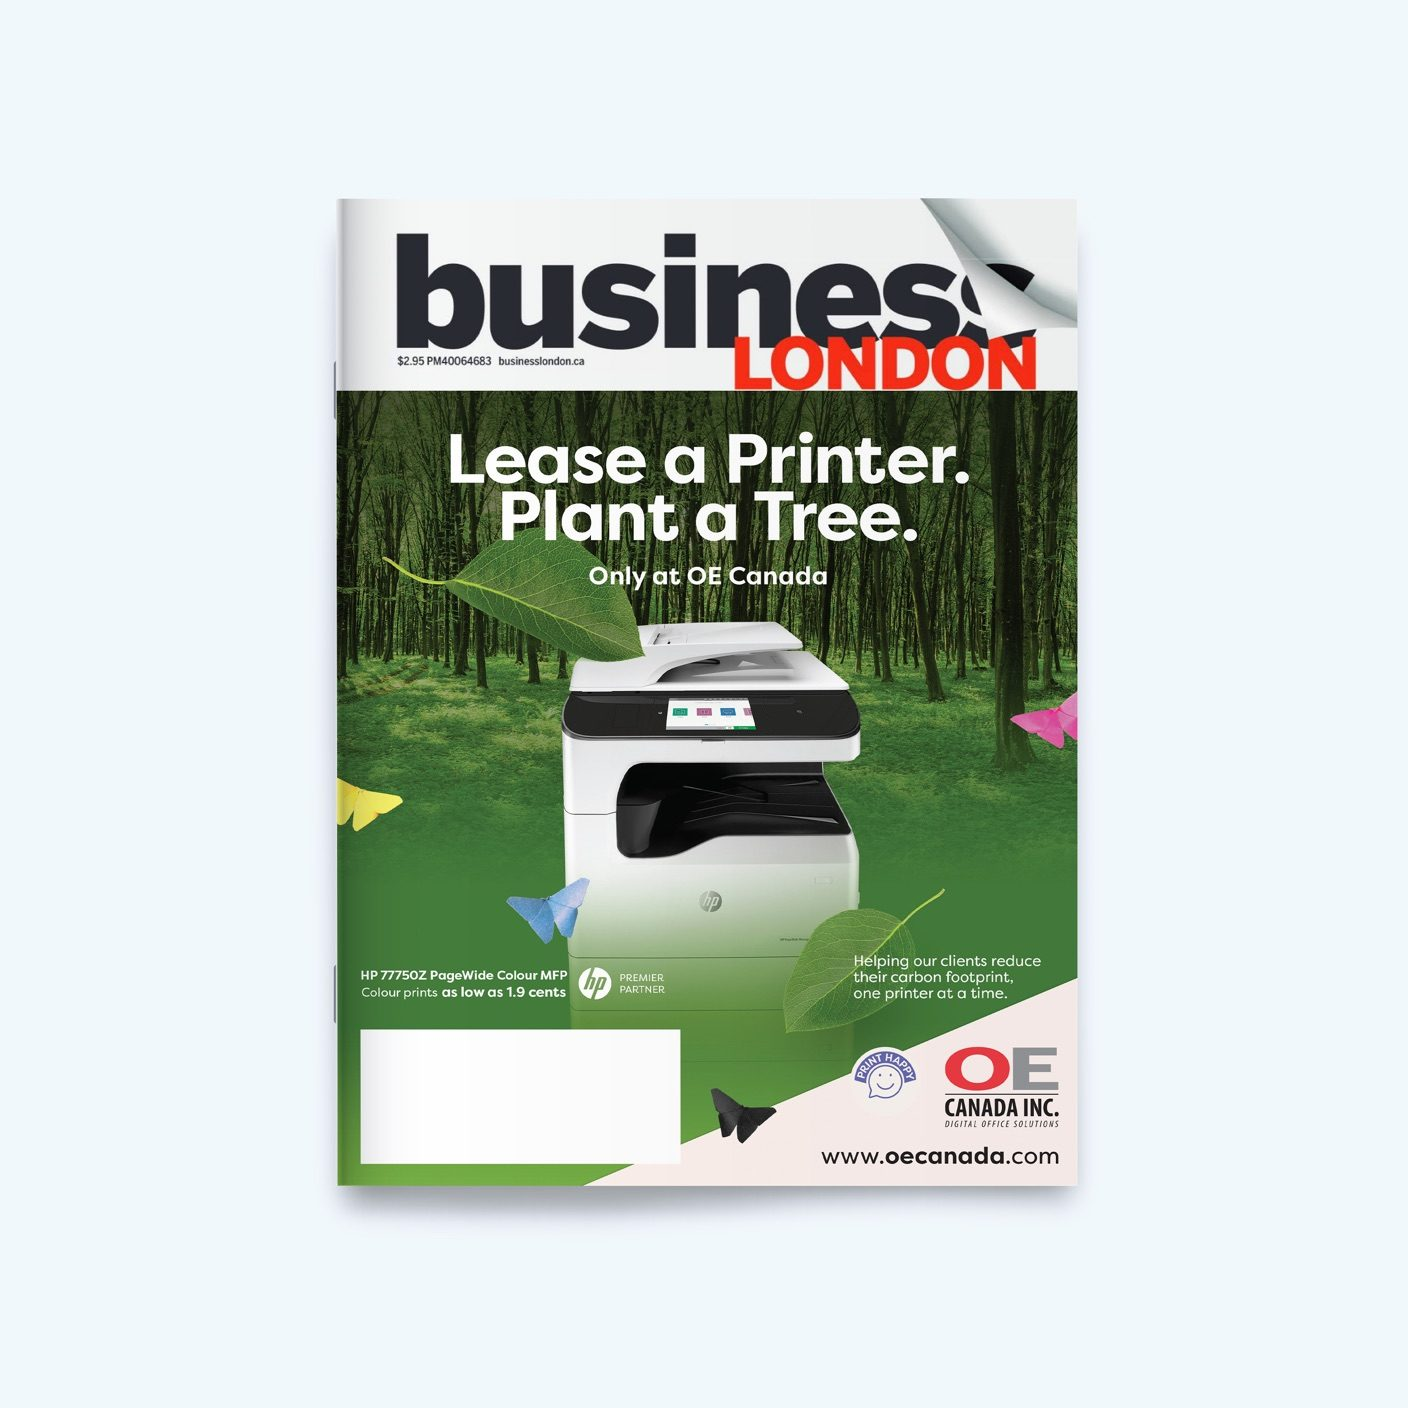 Business London Magazine with the front cover showing an OE Canada Advertisement with an industrial printer with a scenic background